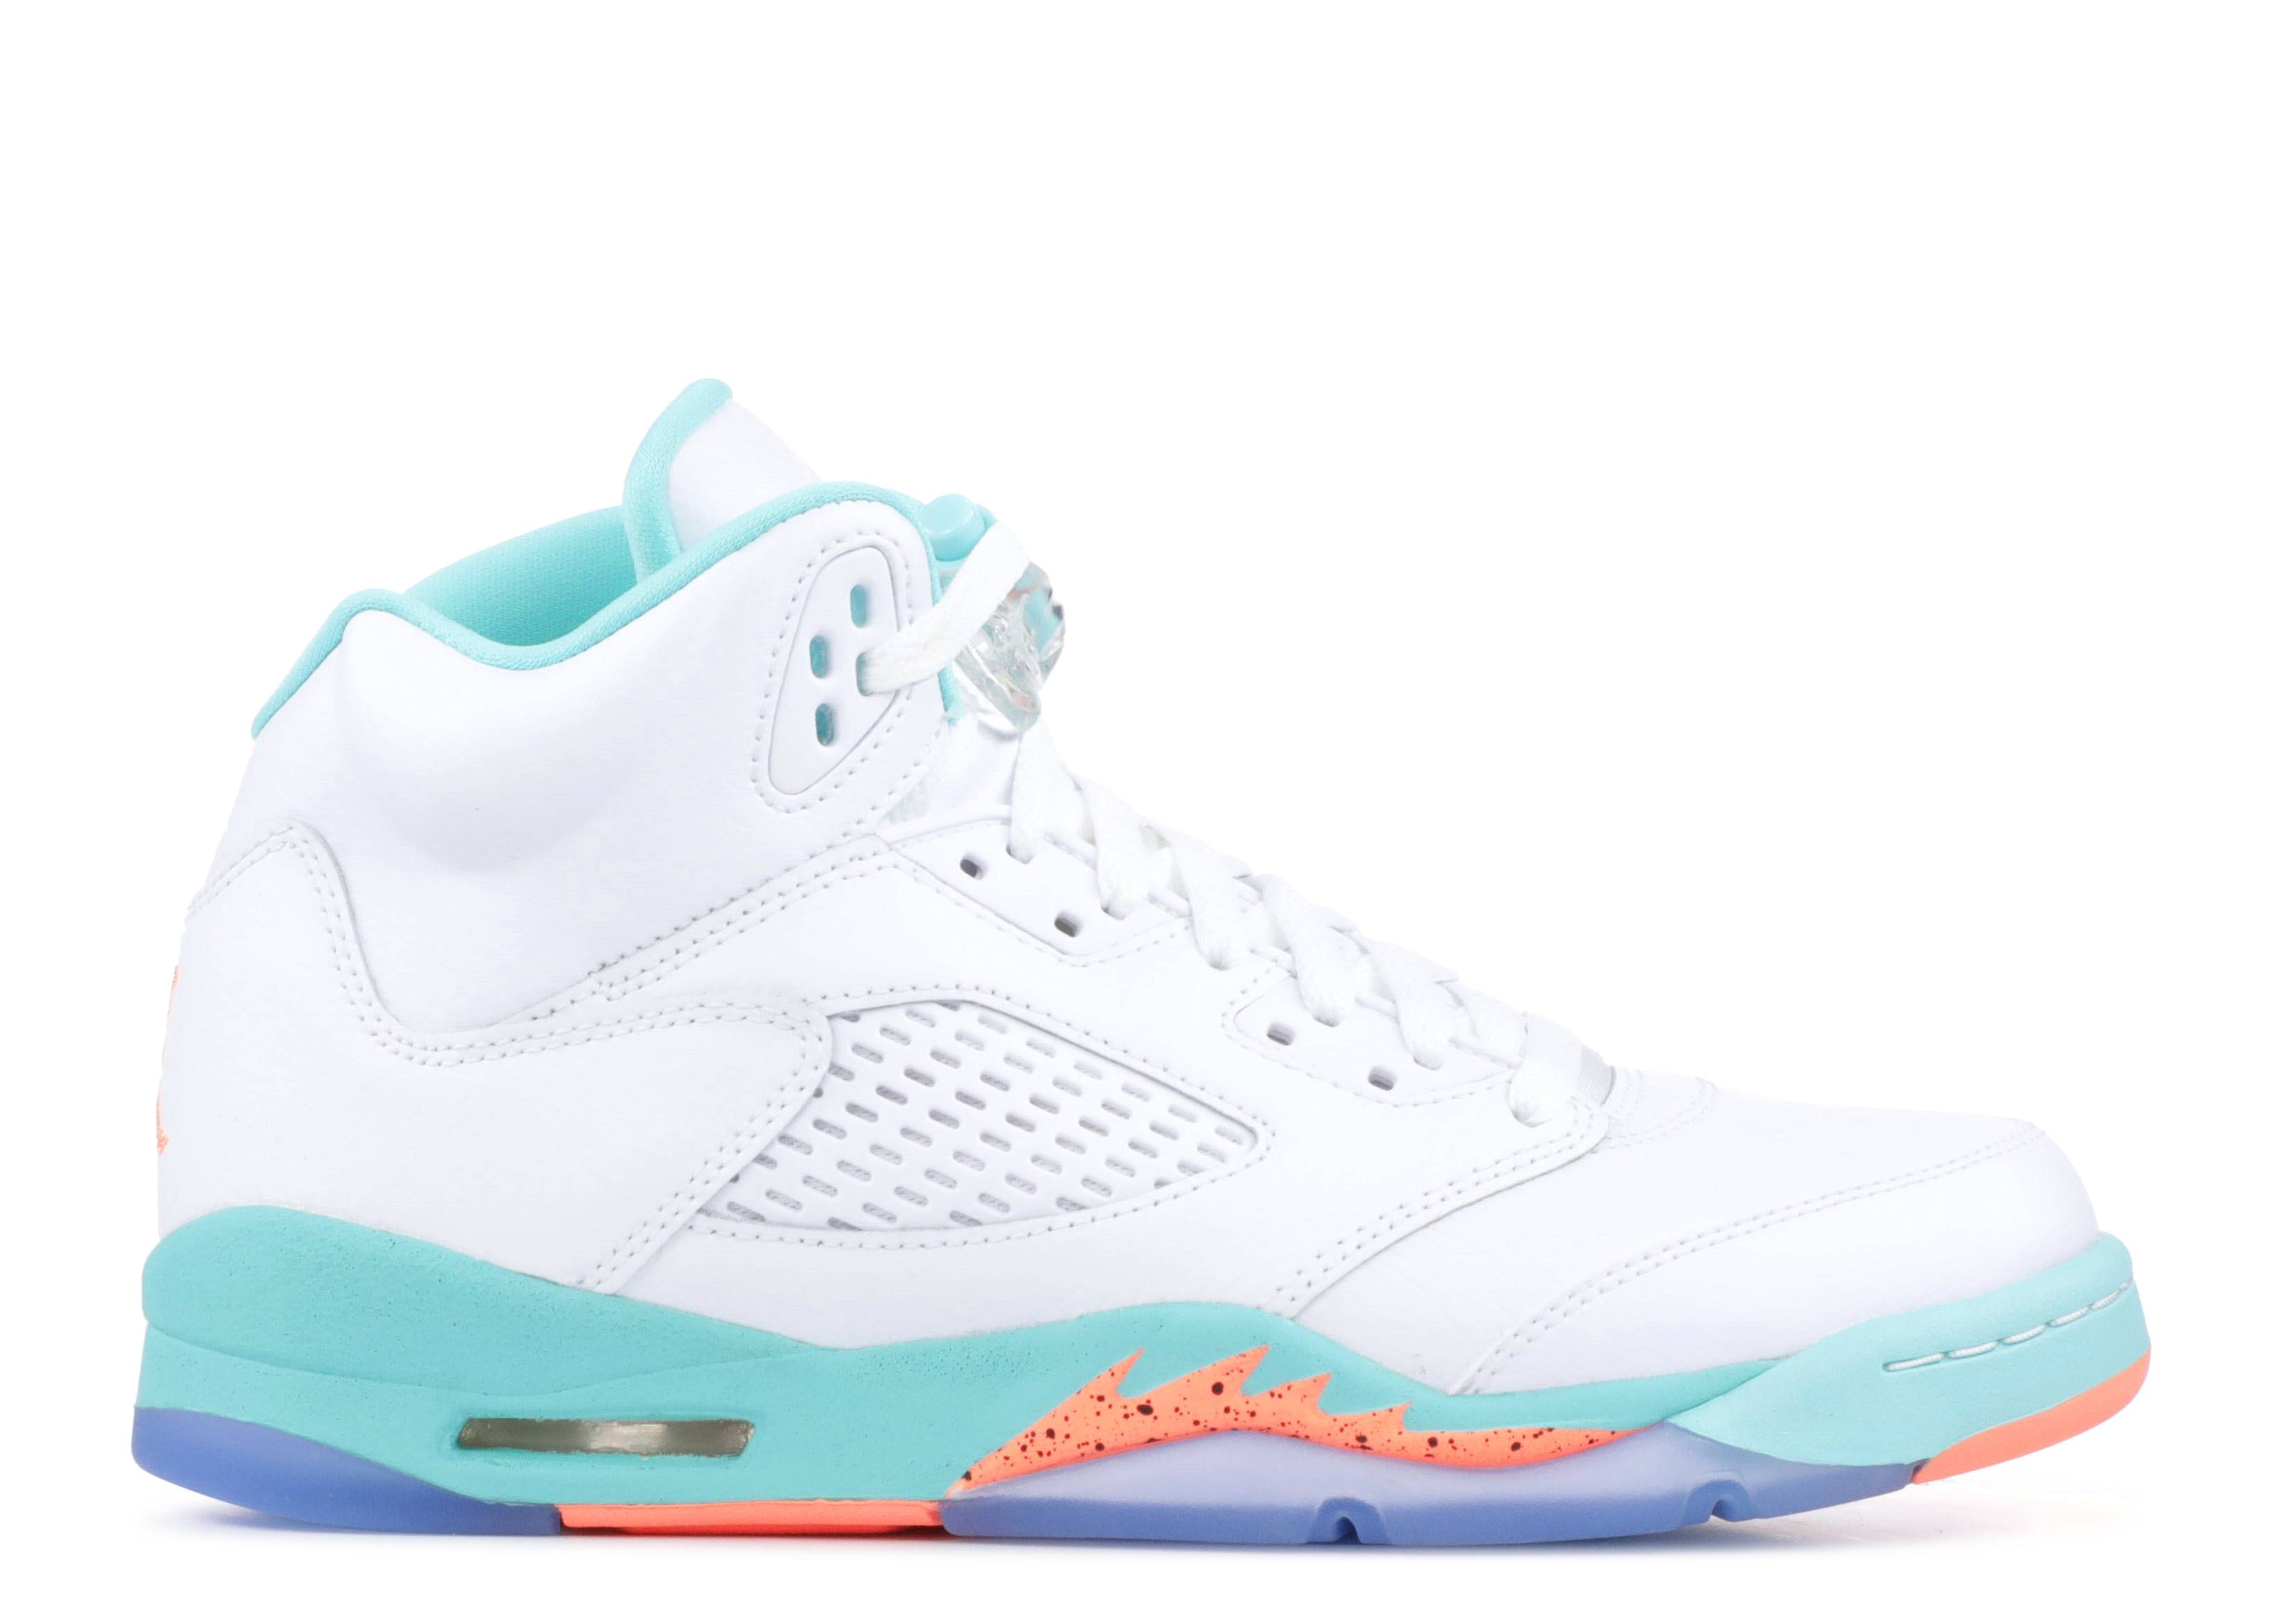 cd4875df875 Air Jordan 5 Retro Gg - Air Jordan - 440892 100 - white crimson ...